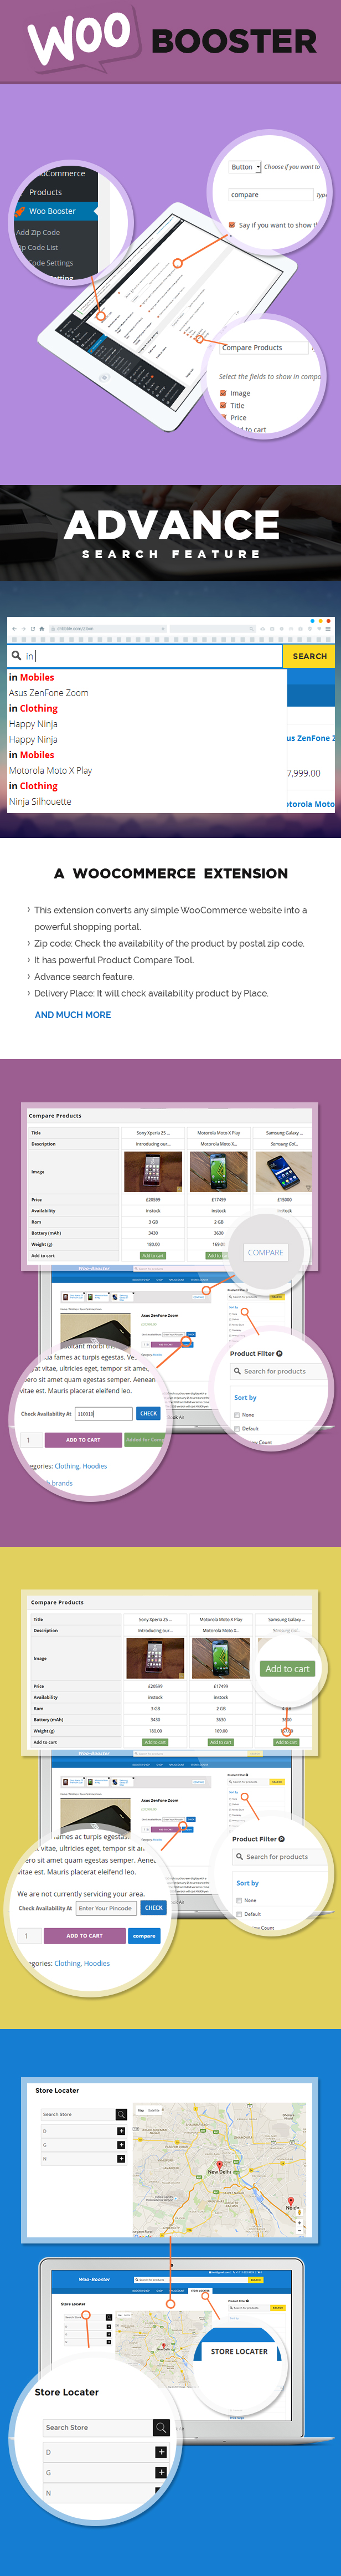 WooBooster - WooCommerce Compare, Live Search, Product Filter, Store Locator 1